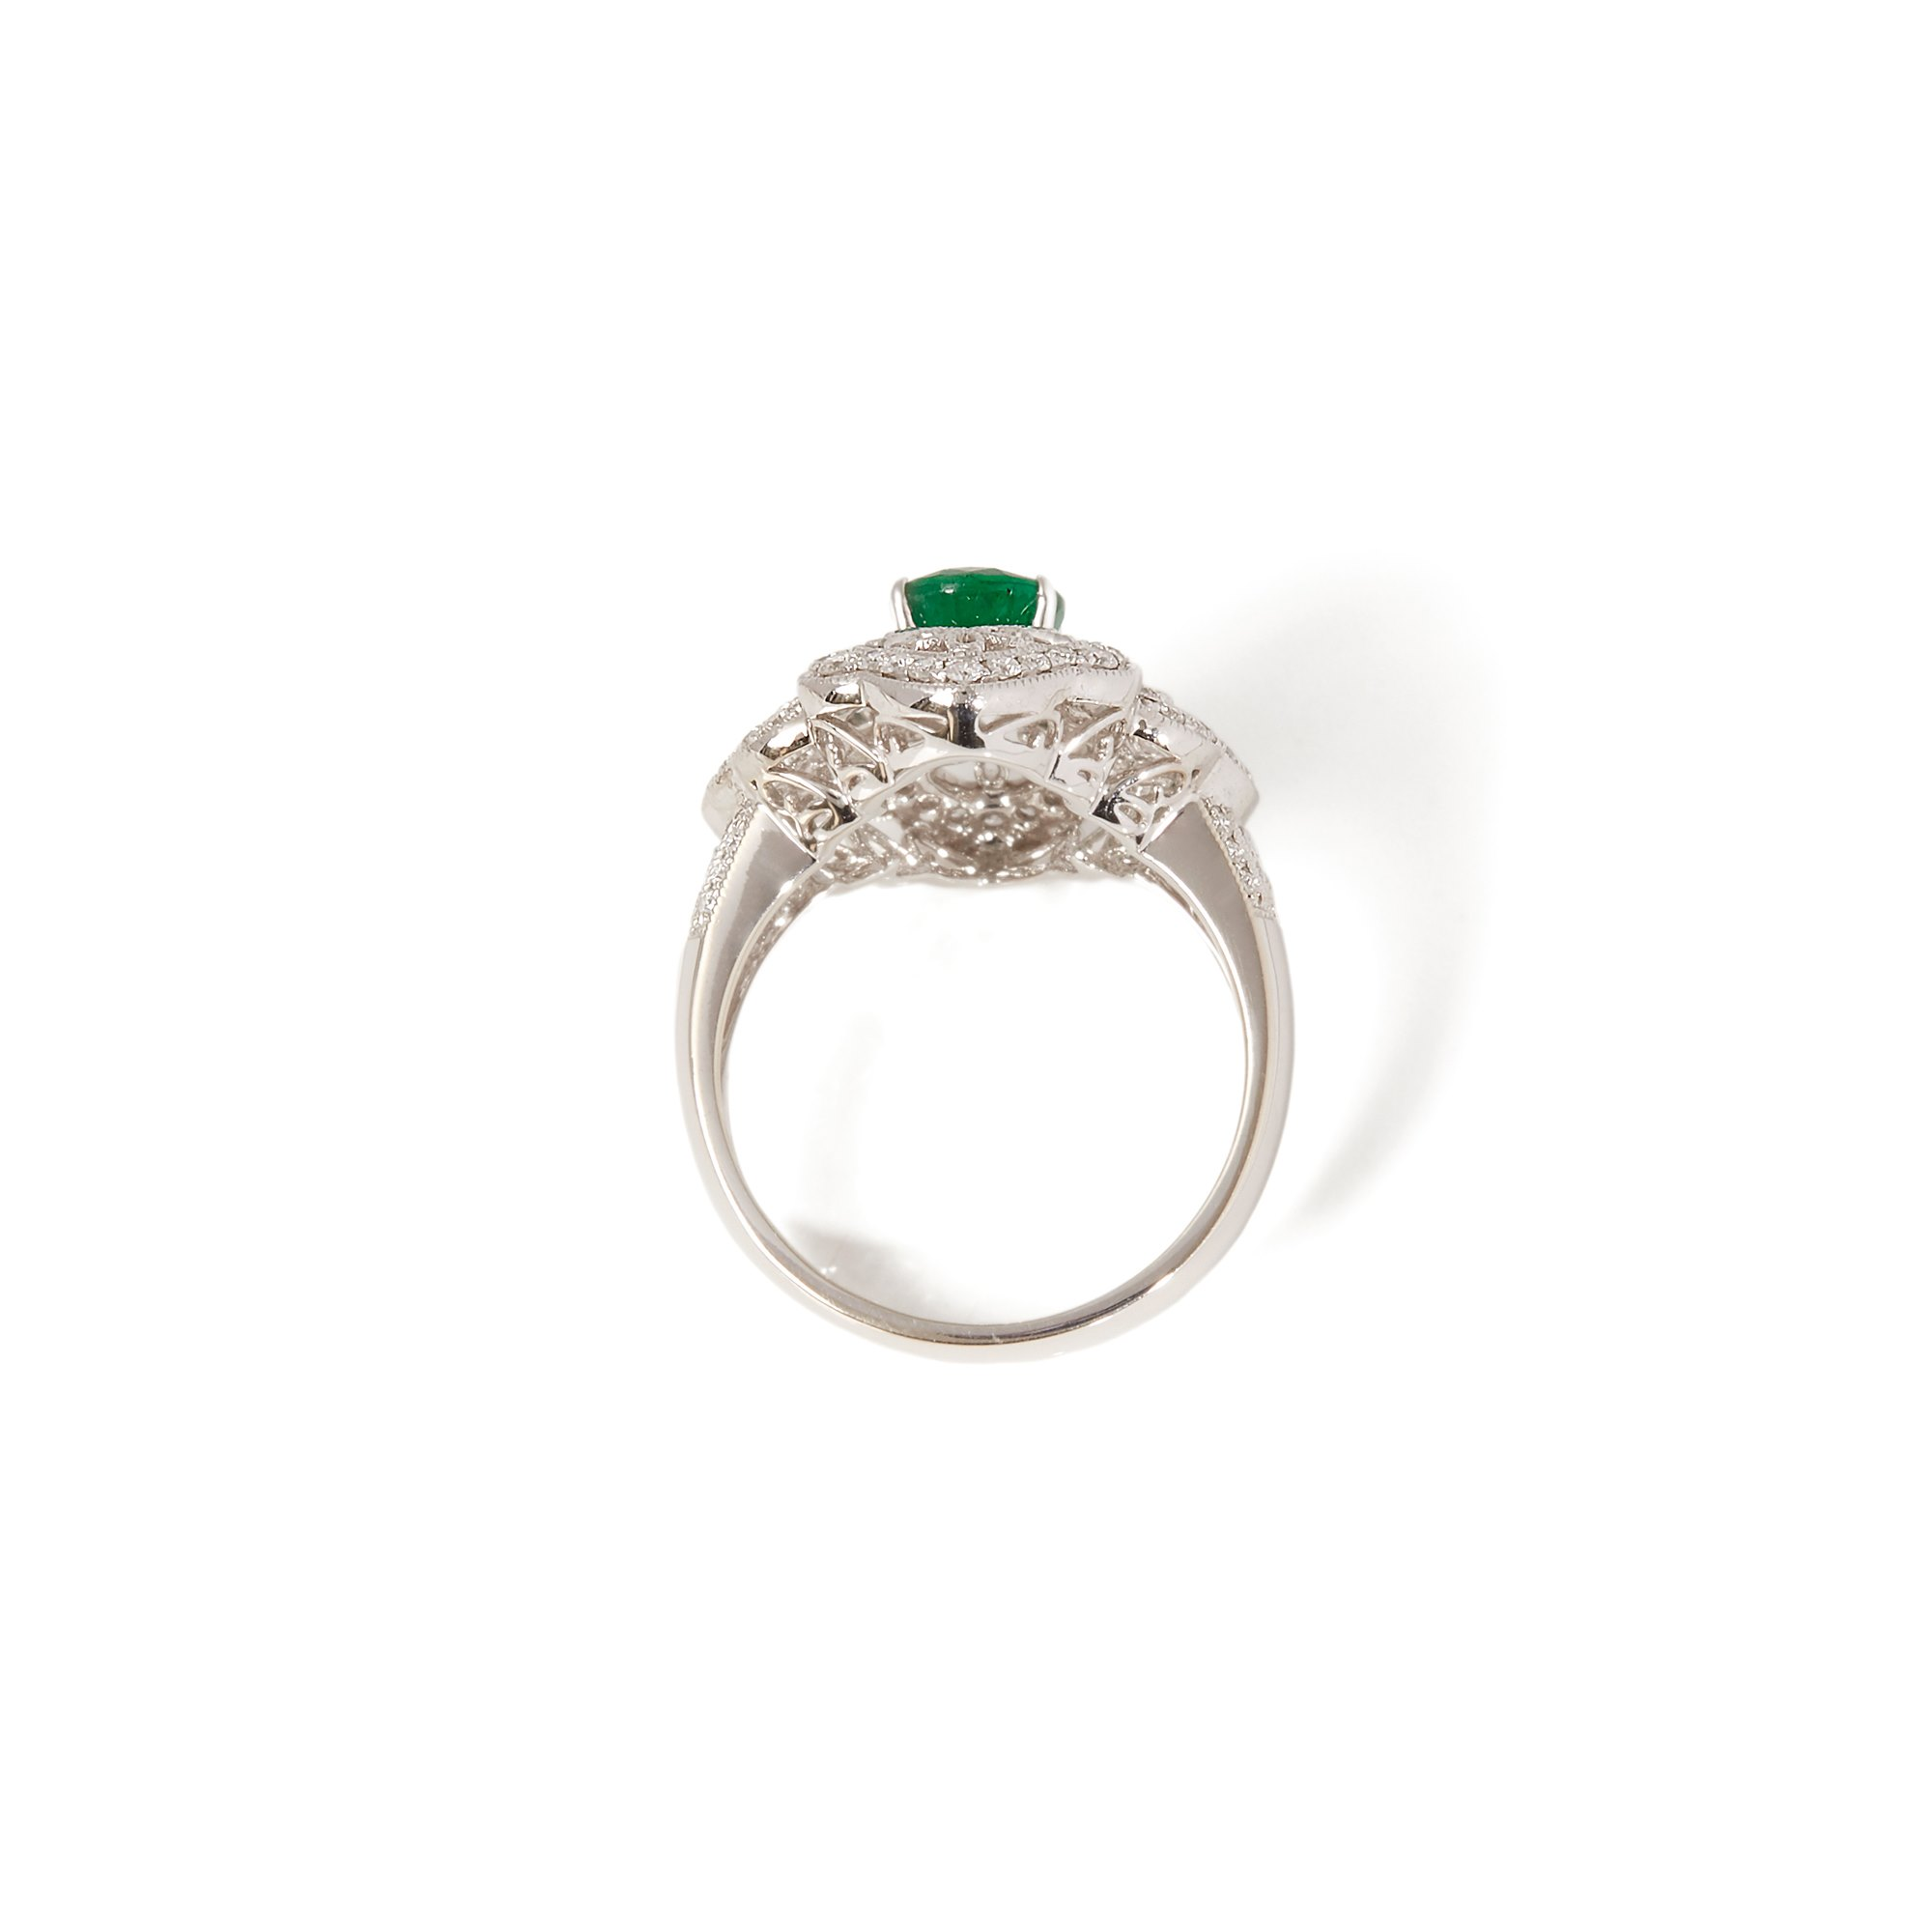 David Jerome Certified 1.72ct Oval cut Emerald and Diamond 18ct gold Ring